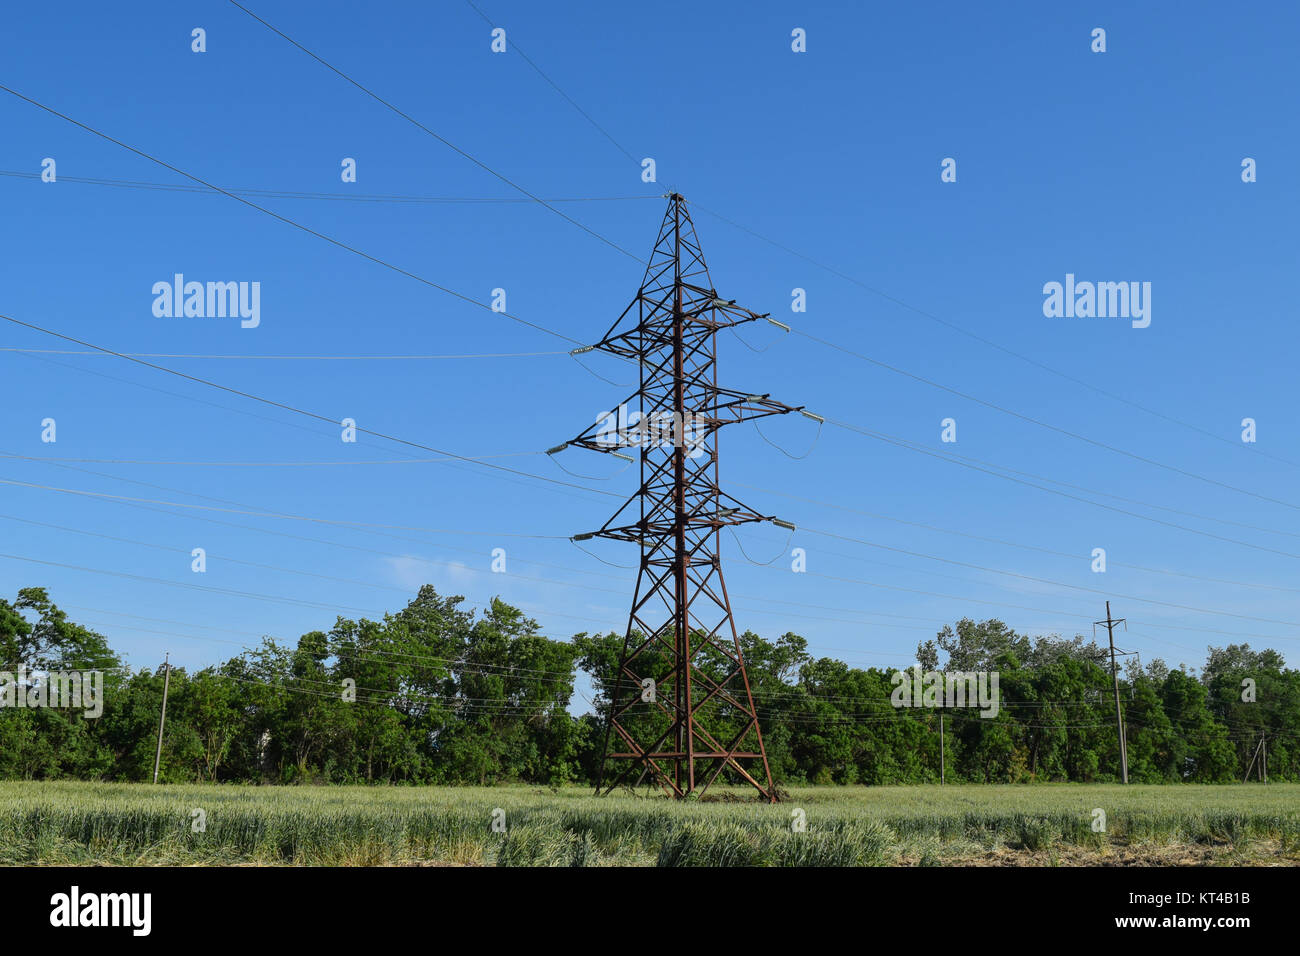 Construction of a high-voltage power line. - Stock Image